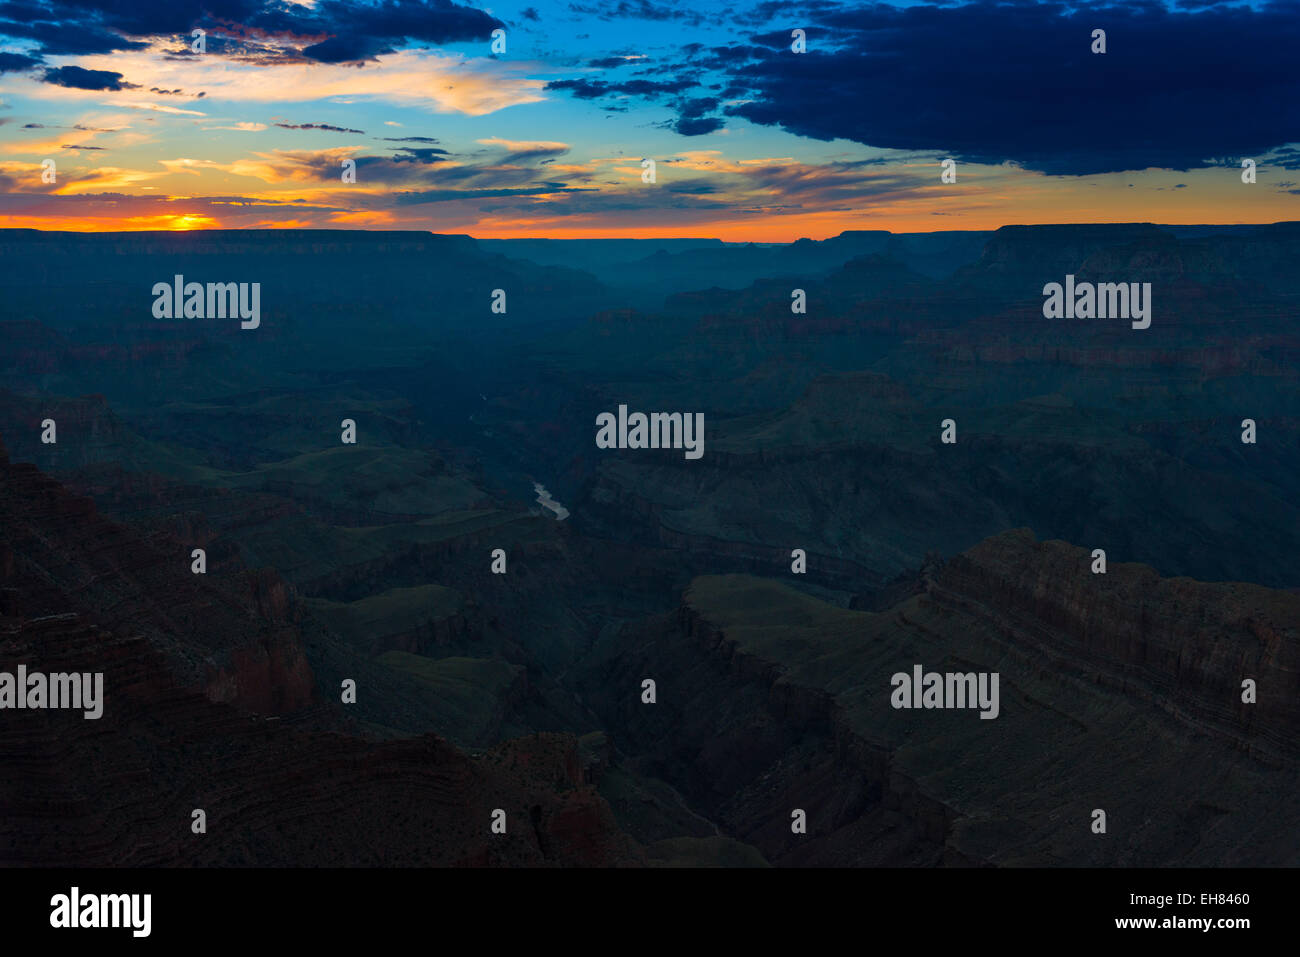 Grand Canyon And Colorado River Landscape At Sunset, Arizona - Stock Image